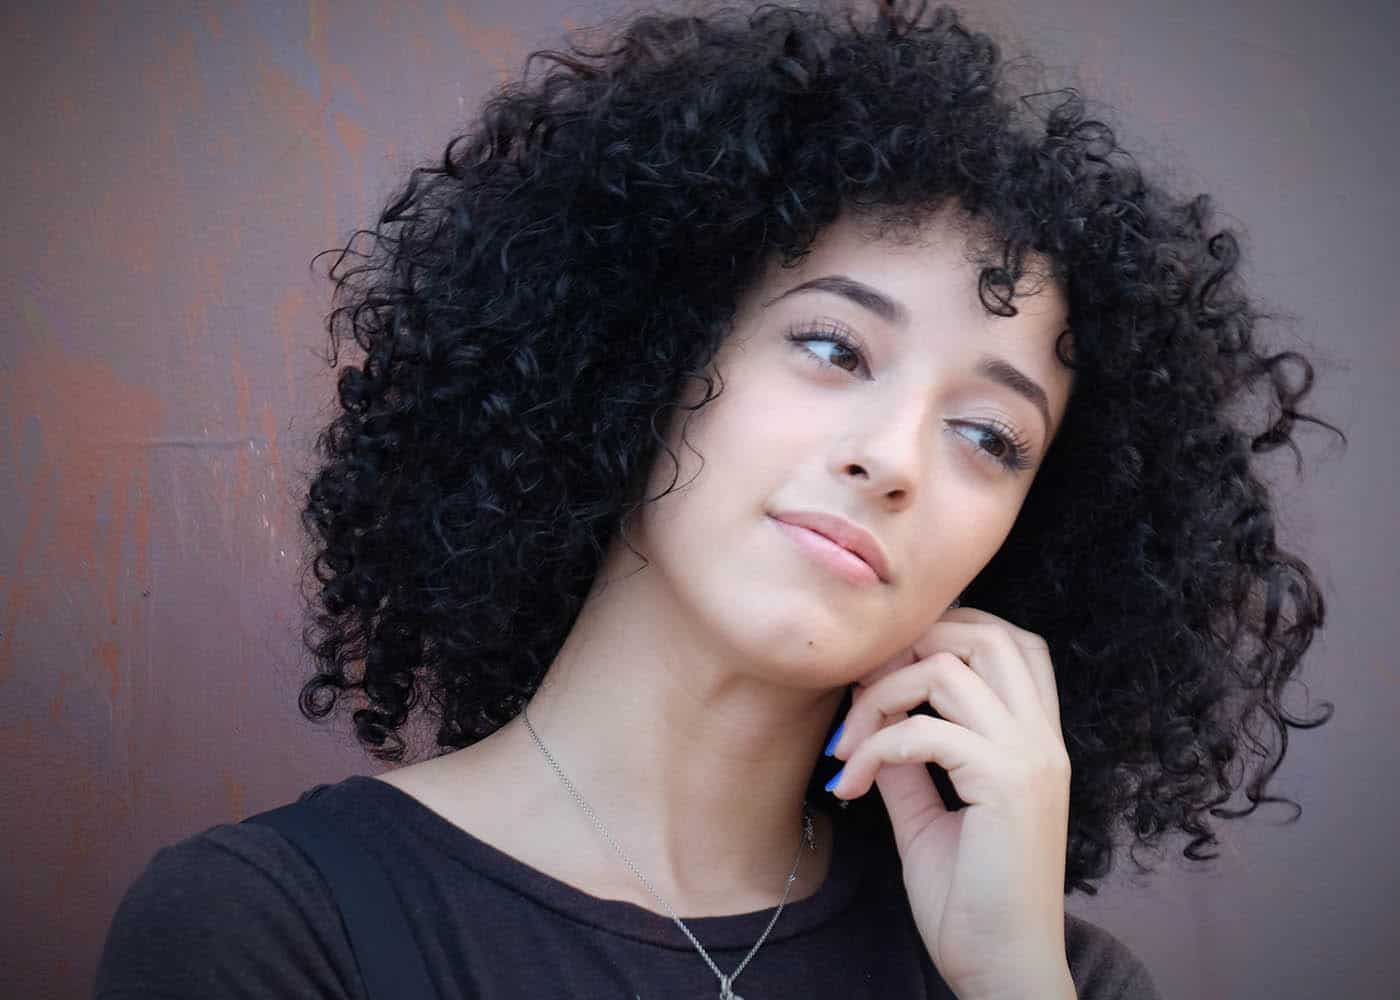 Perm Rod Hairstyles On Short Hair Curls Natural Hair And Relaxed Hair